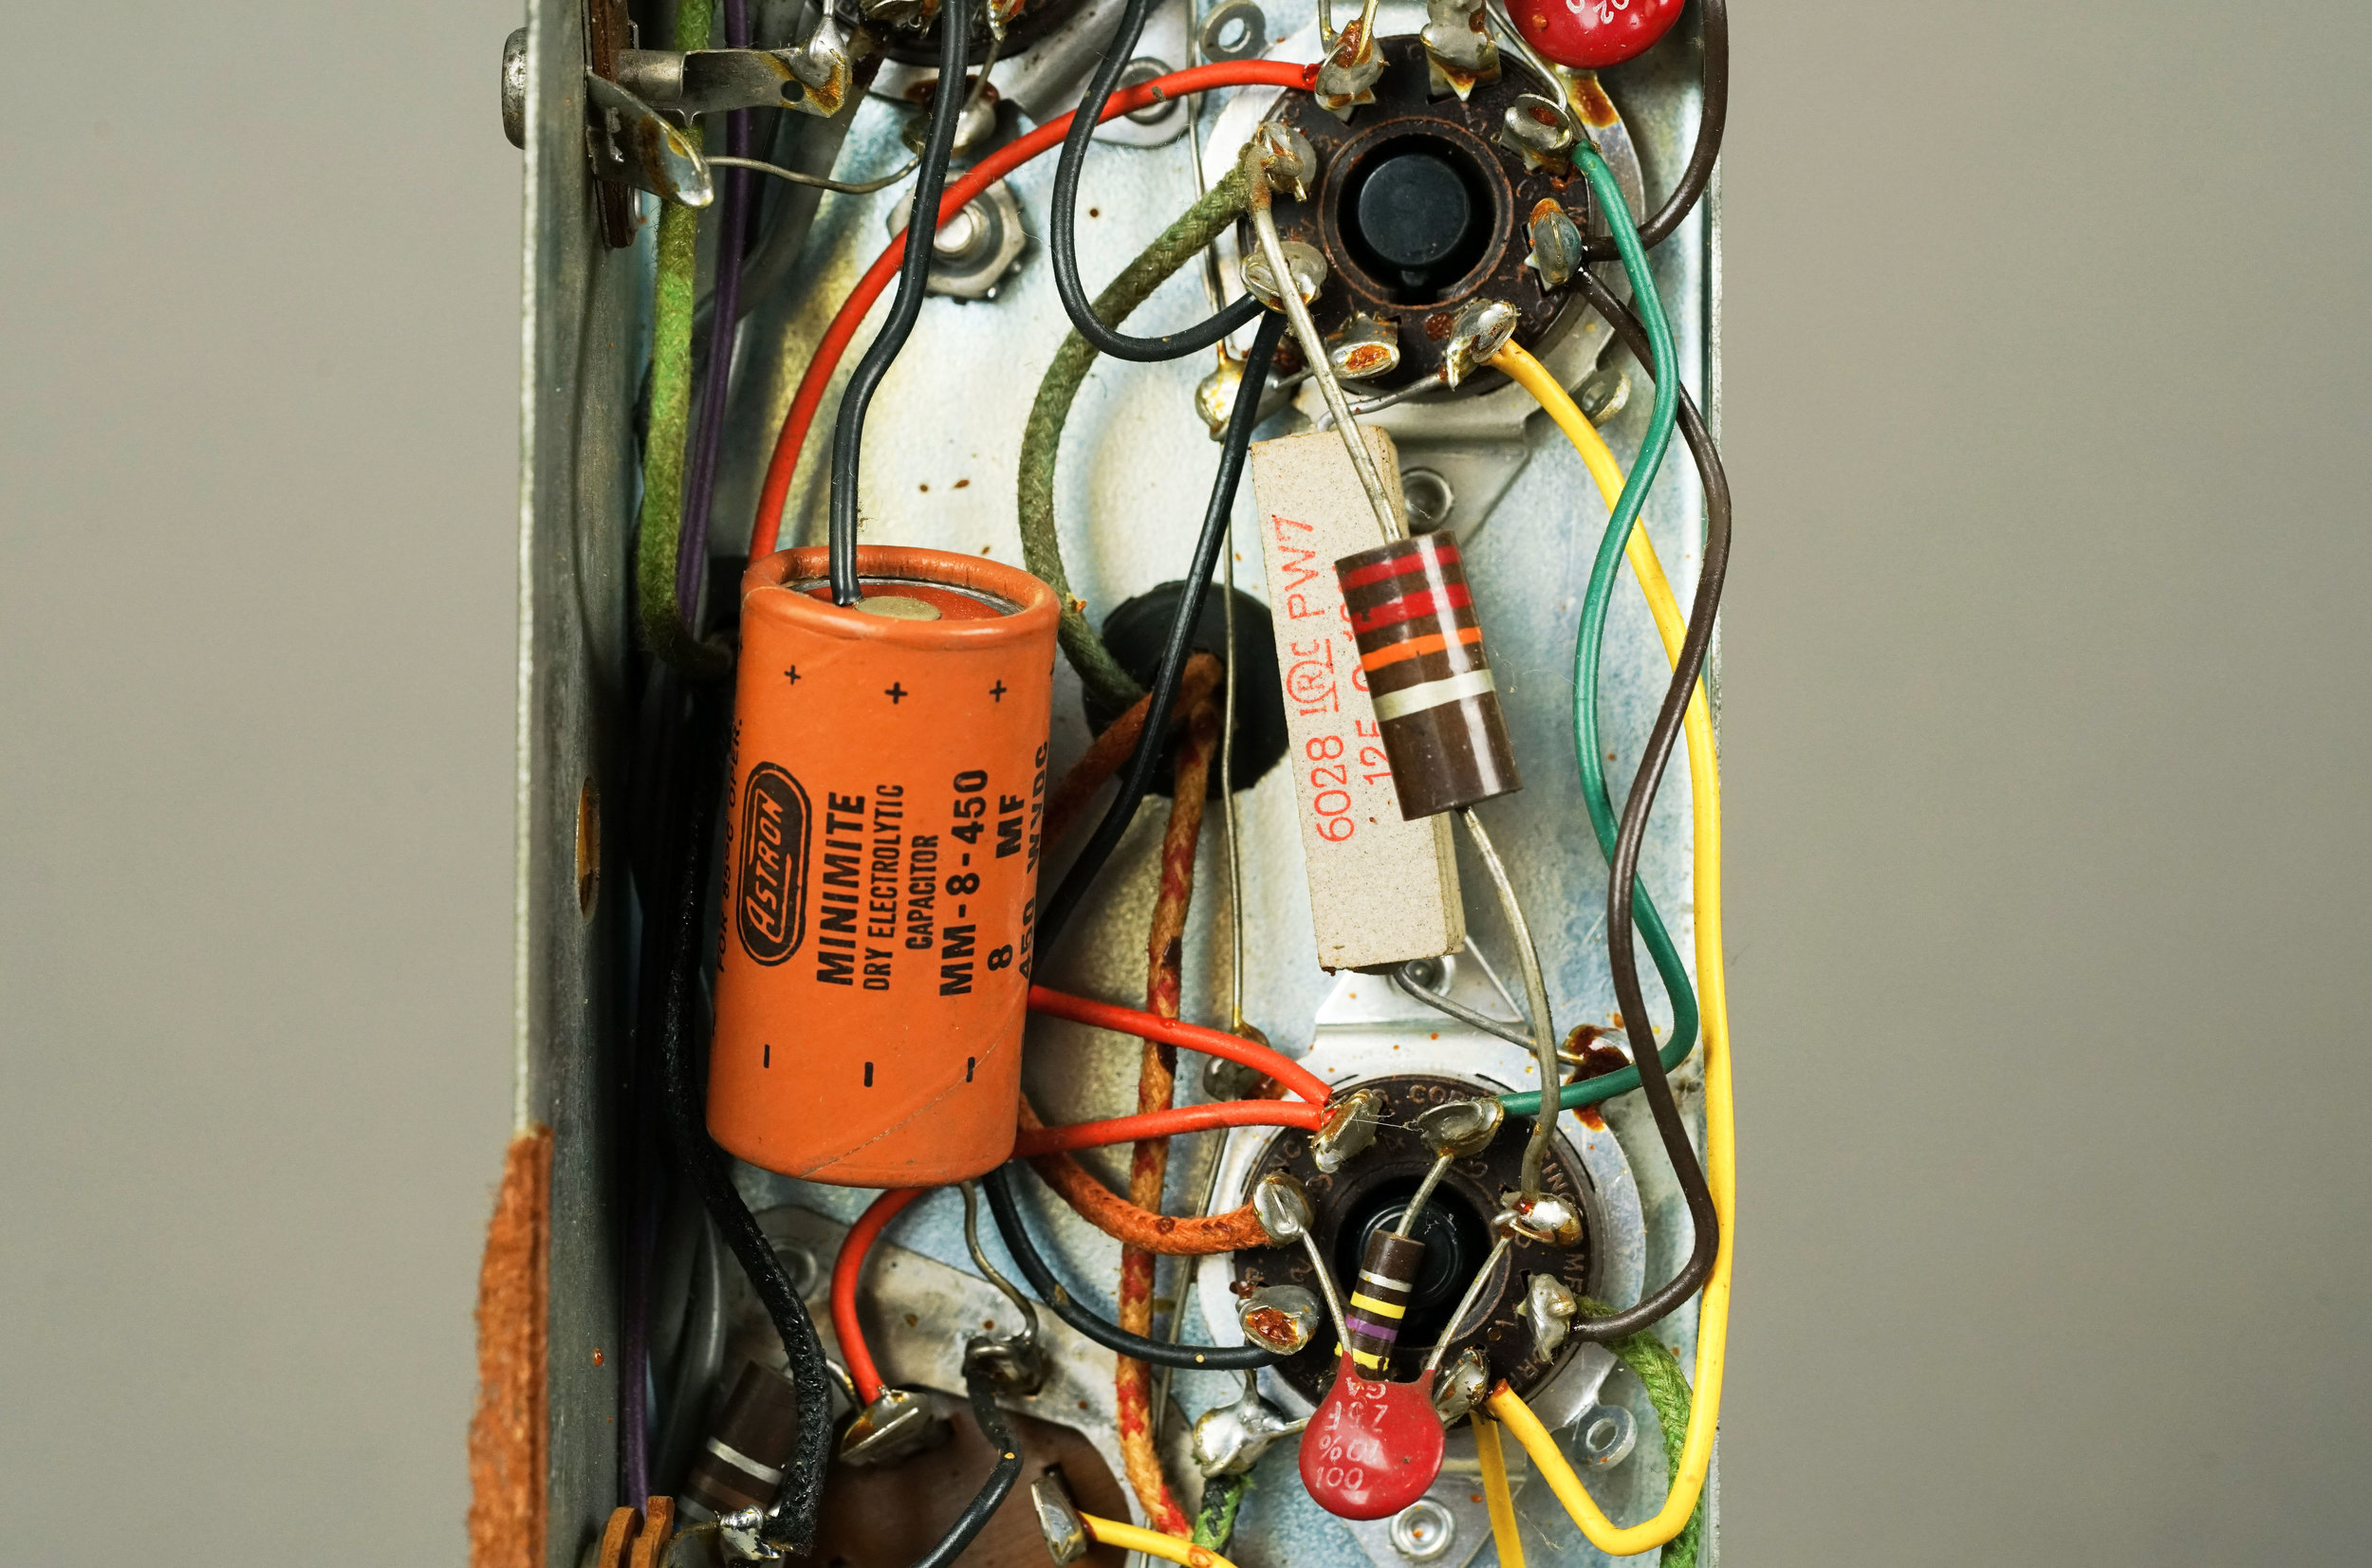 In this image of the Wurlitzer 700 amplifier, you can see that the black heater wire is connected to ground. A center-tap would be a quieter alternative option.